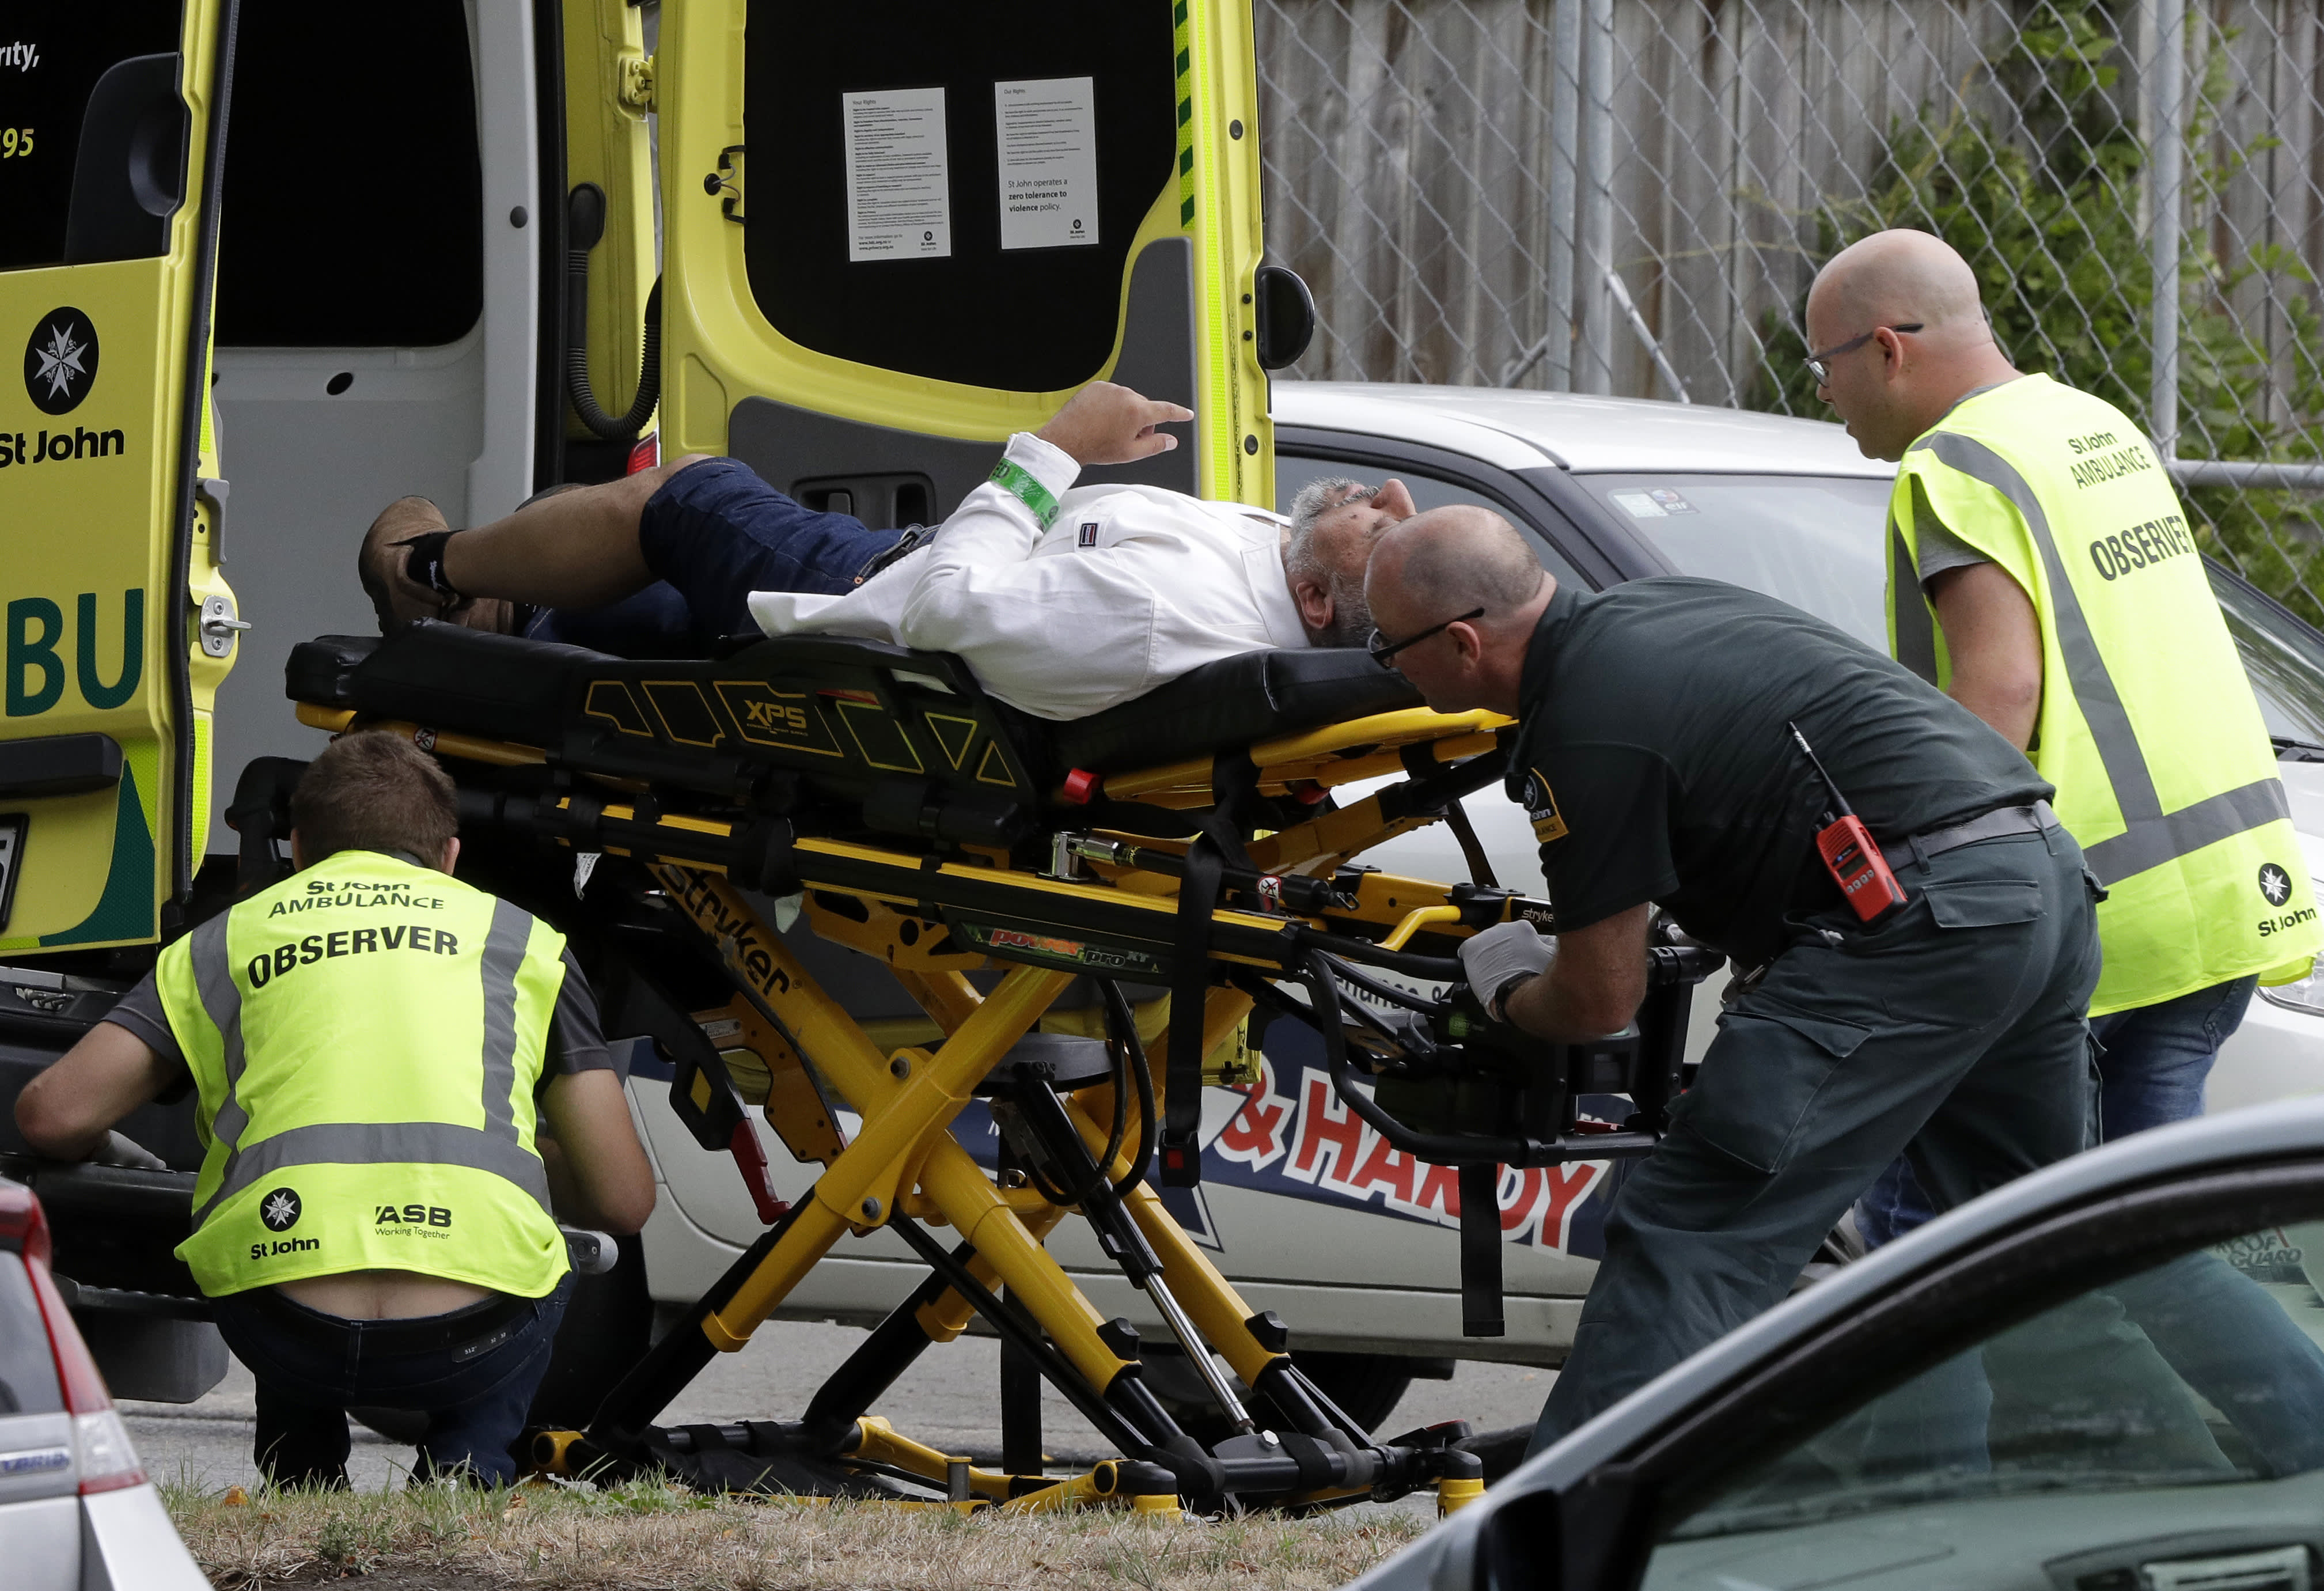 Shooting at mosque in Christchurch, New Zealand